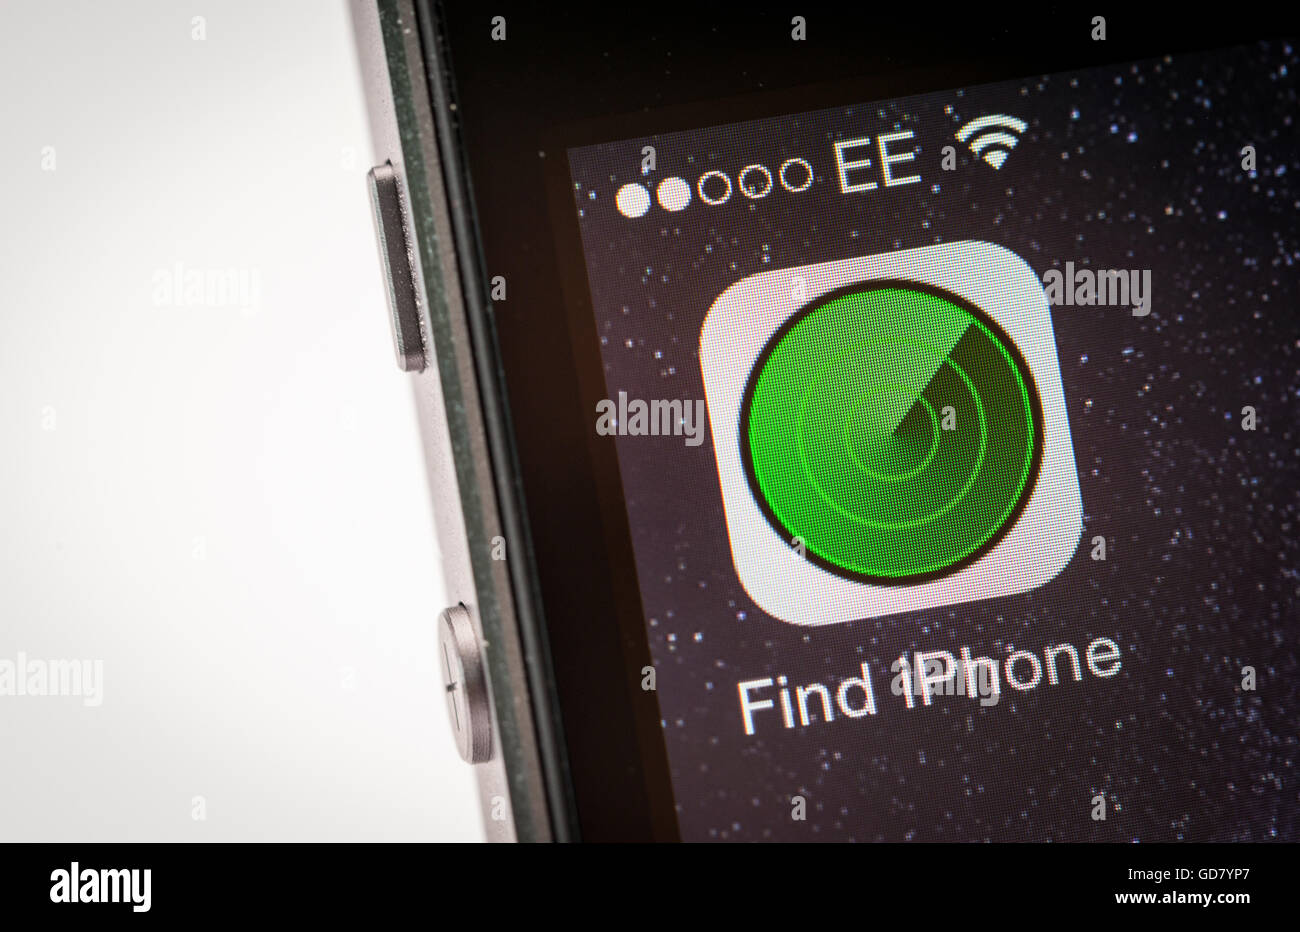 Find iPhone App on an iPhone smart phone - Stock Image